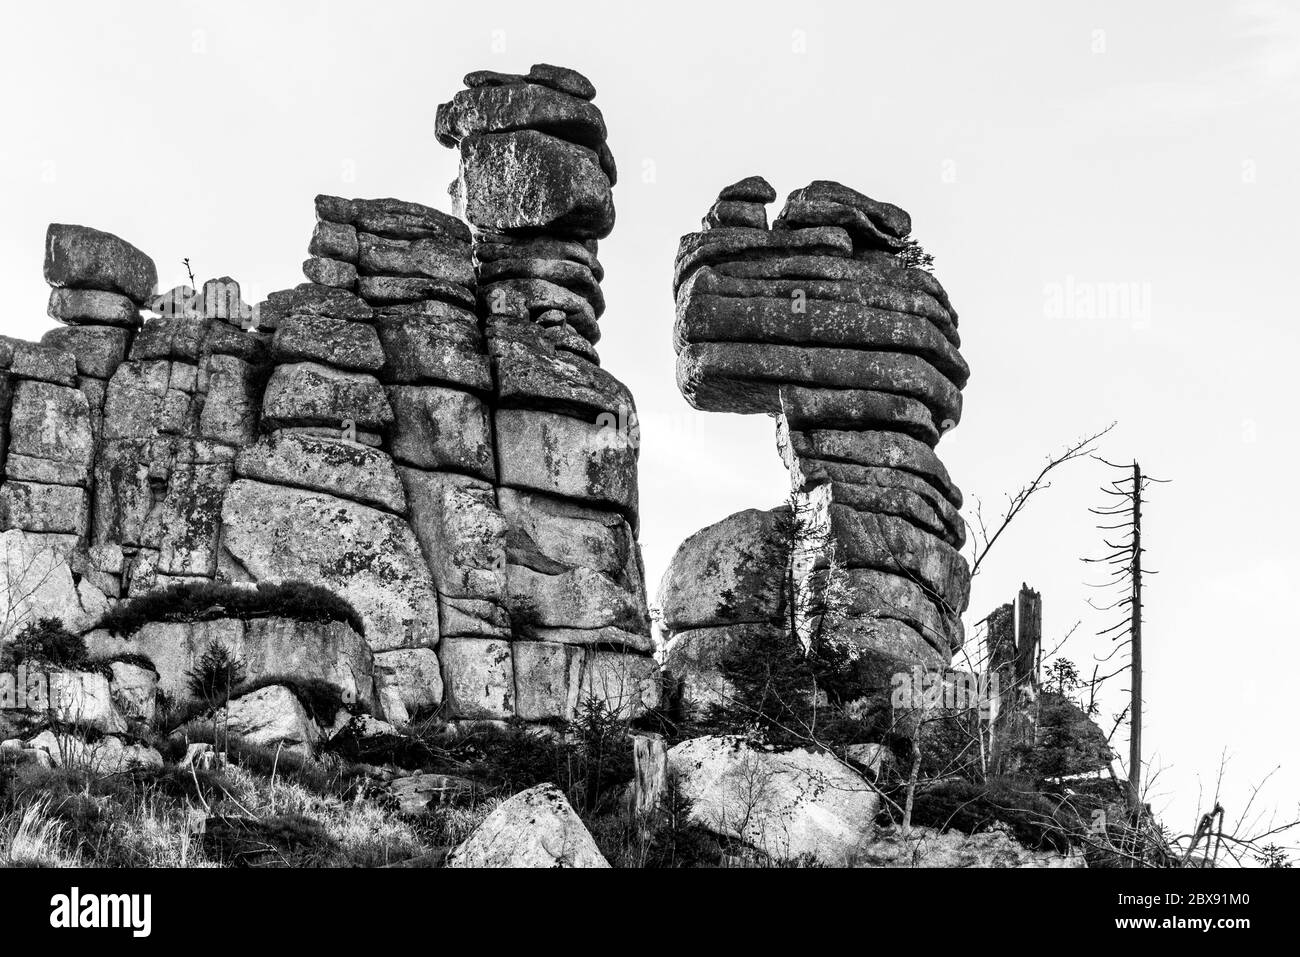 Unique eroded granite rock formation on the top of Tristolicnik, Dreisesselberg. Sumava National Park and Bavarian Forest, Czech republic and Germany. Black and white image. Stock Photo